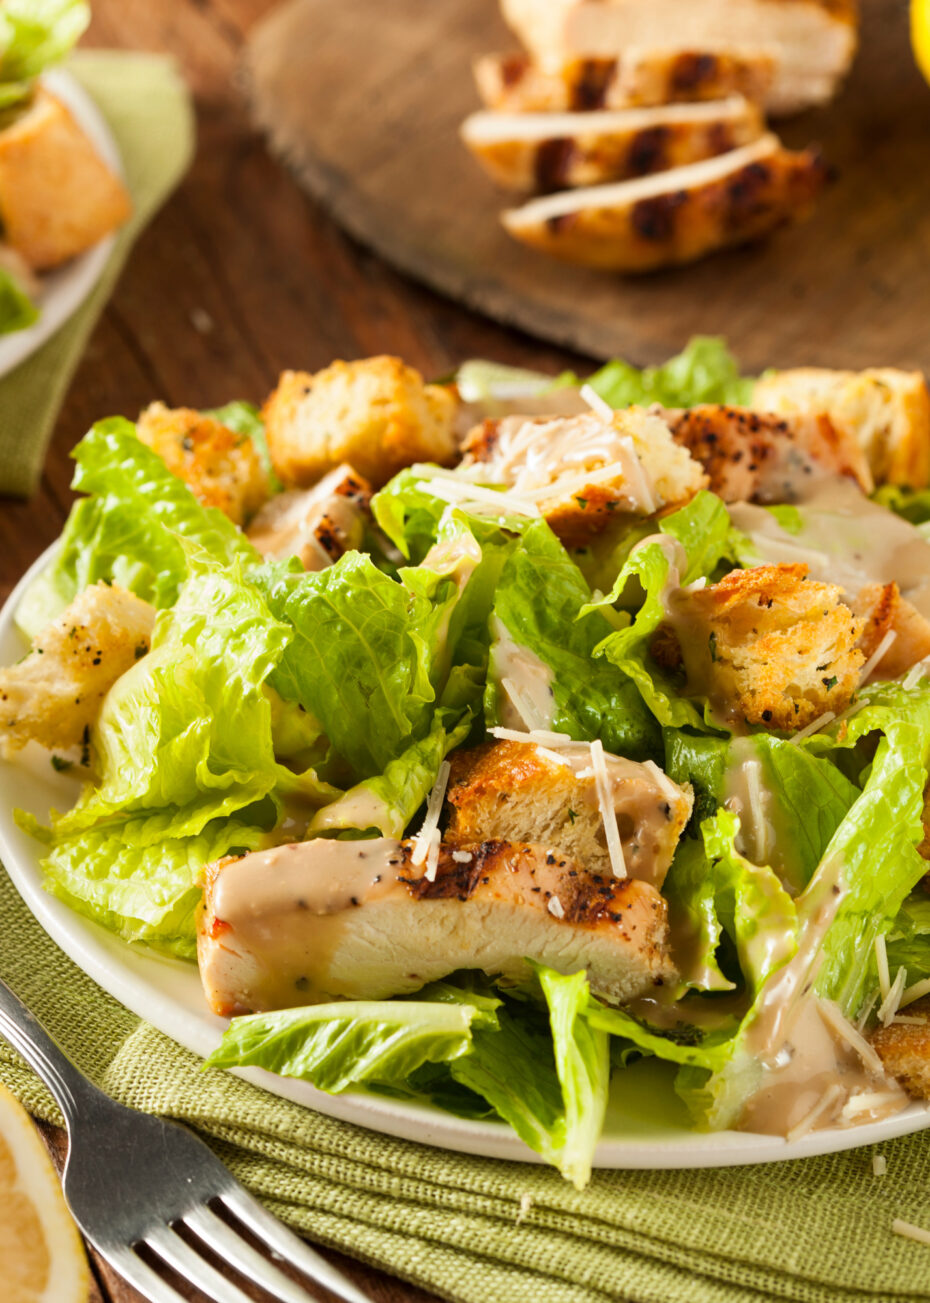 Chicken Caesar Salad is a refreshing and wonderful tasting dish, made from scratch and easy too! Options for low calorie if you prefer.